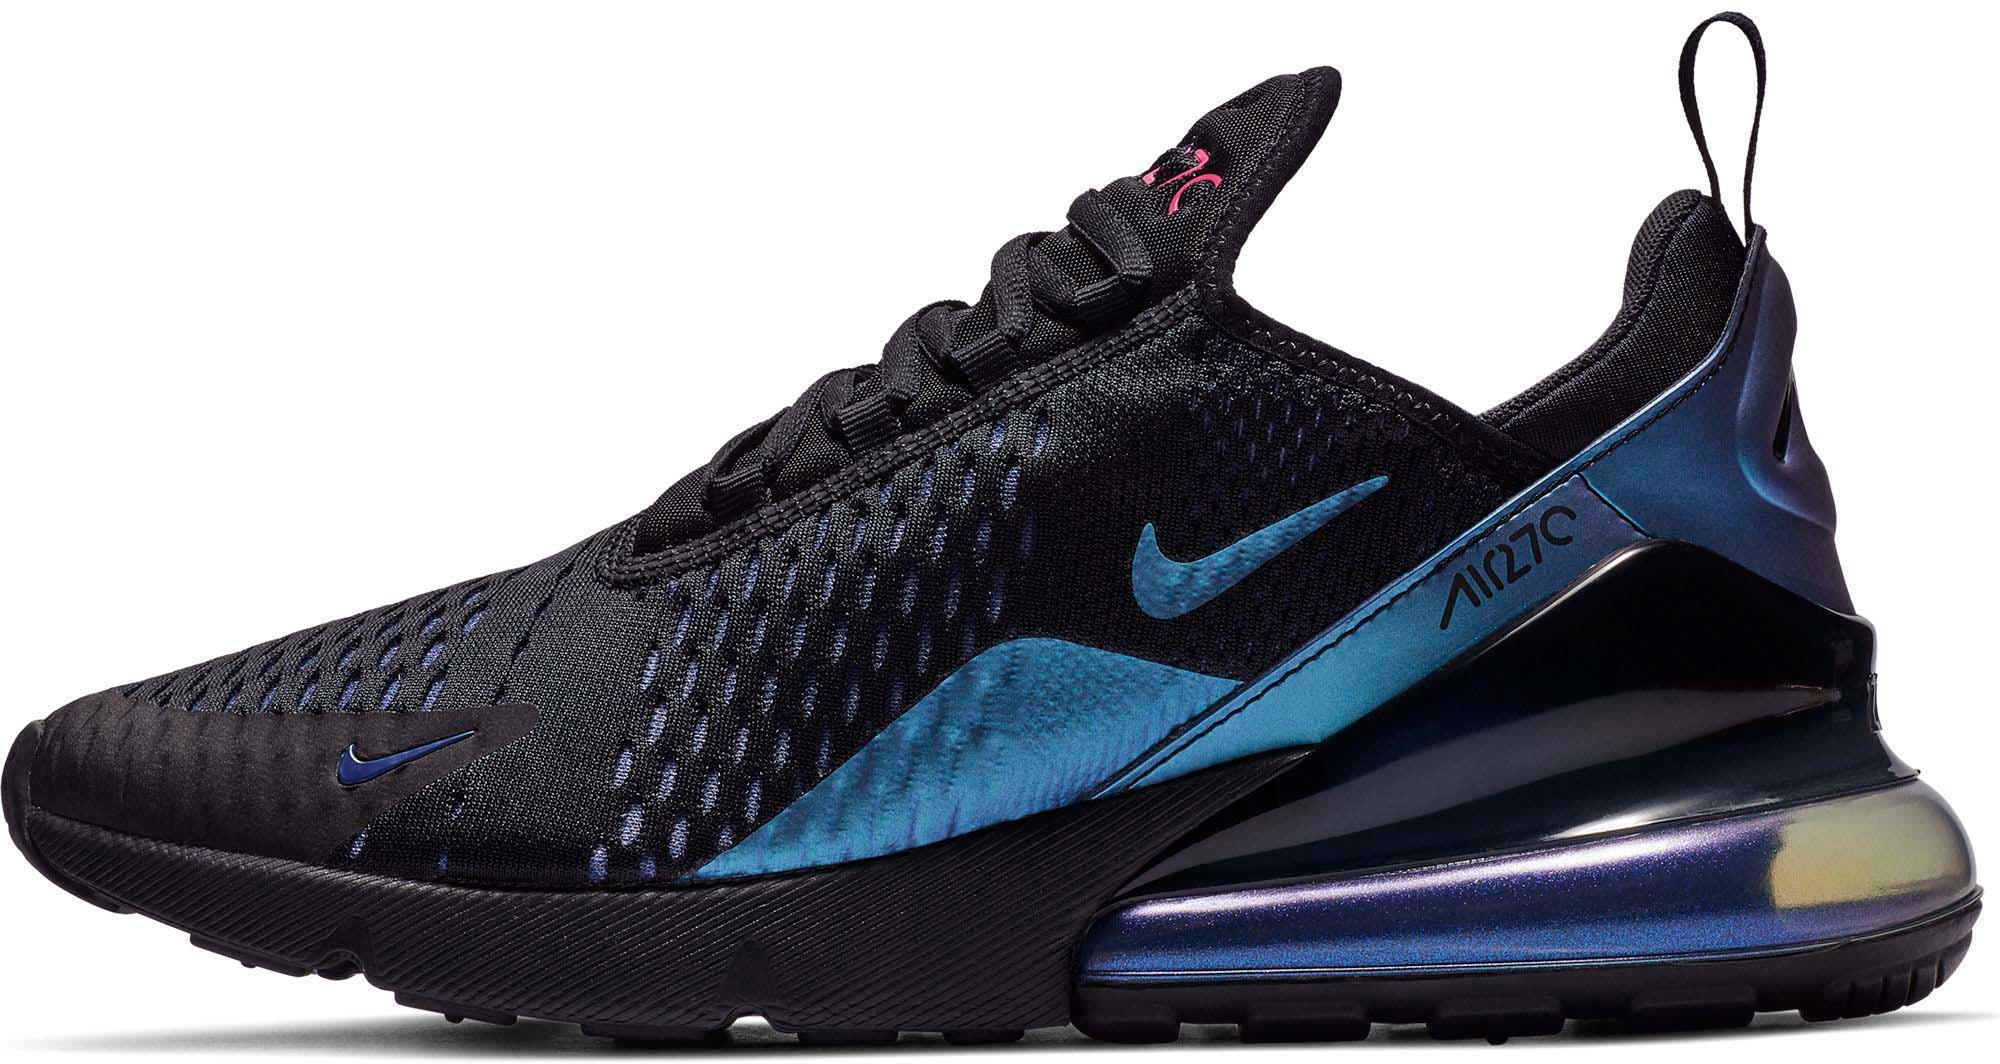 Nike Air Max Schwarz Blau aktion